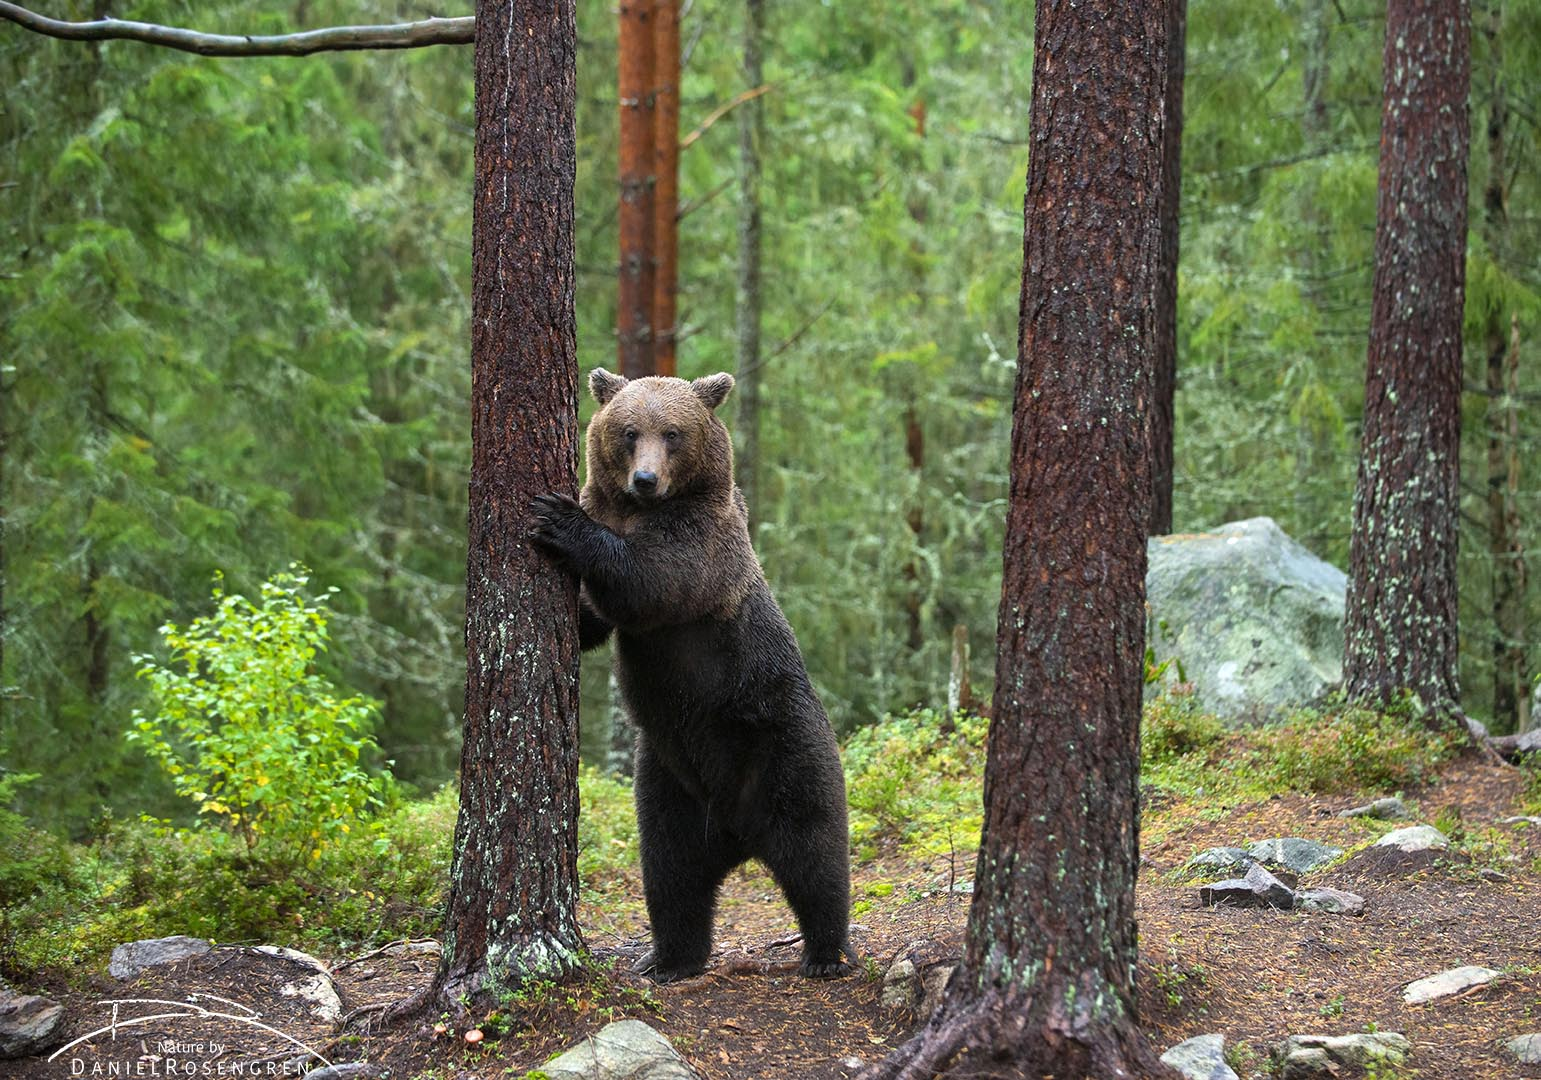 As a perfect model, the bear stood up against a tree and looked towards us.